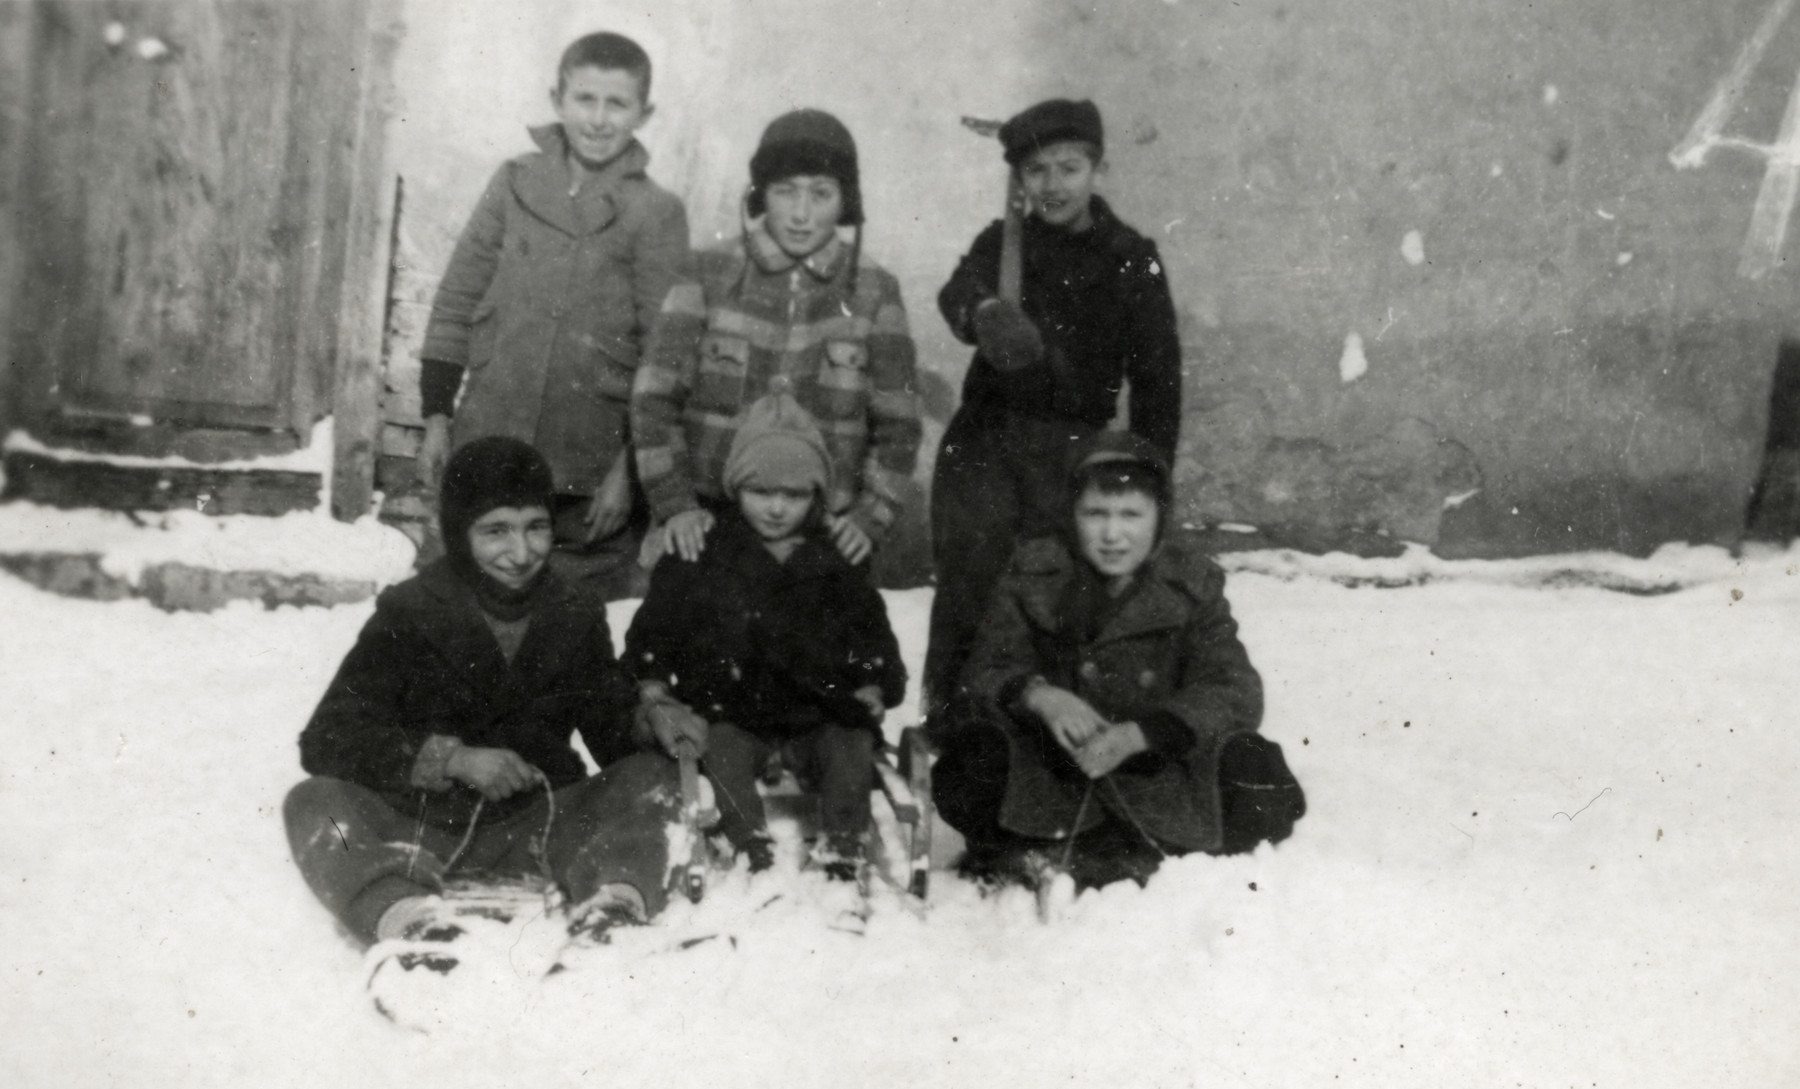 Raul Teitelbaum and his friends play in the snow.  Raul is in the second row, center.